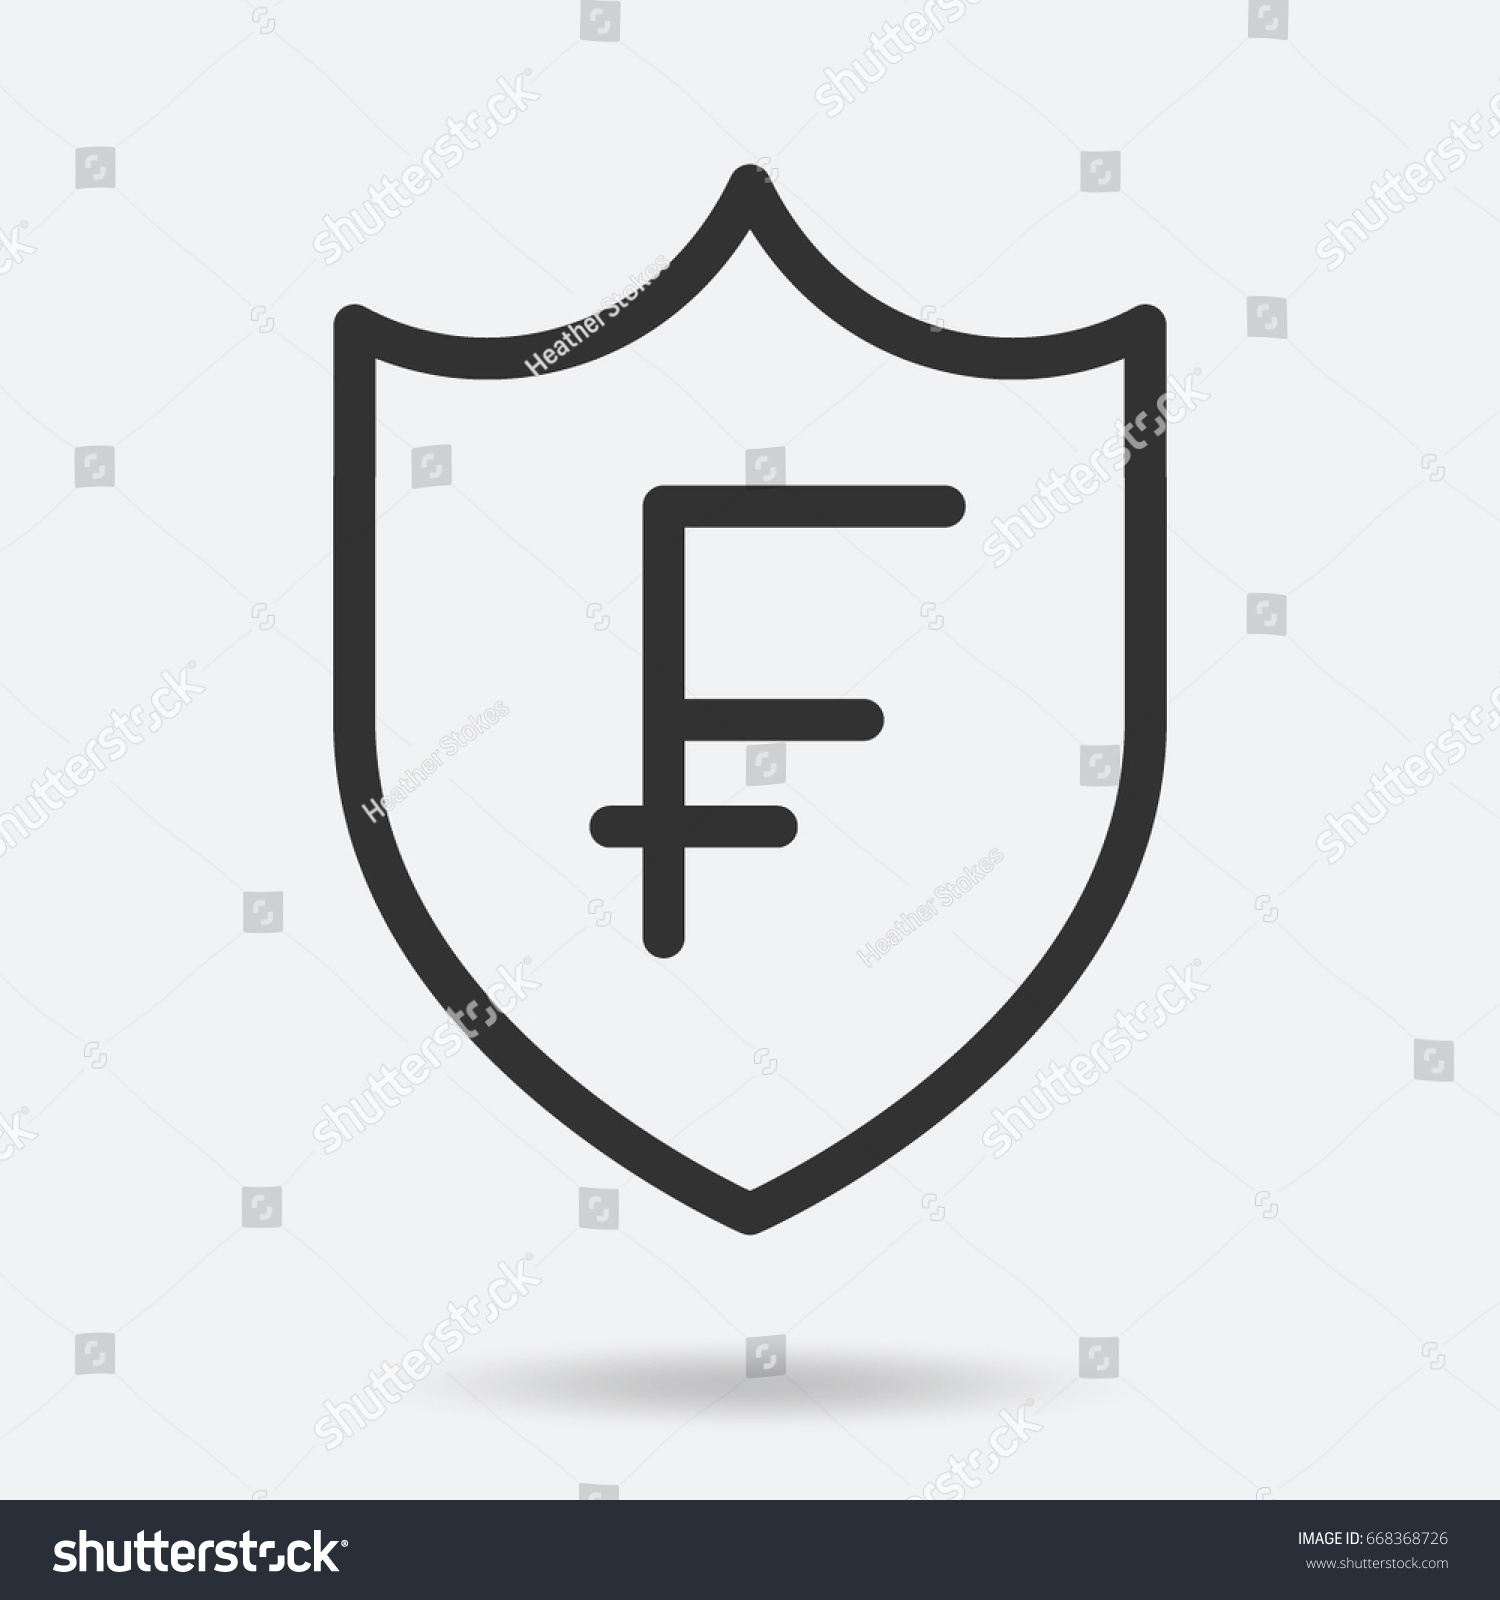 Swiss franc currency symbol shield stock vector 668368726 shutterstock swiss franc currency symbol in a shield buycottarizona Images